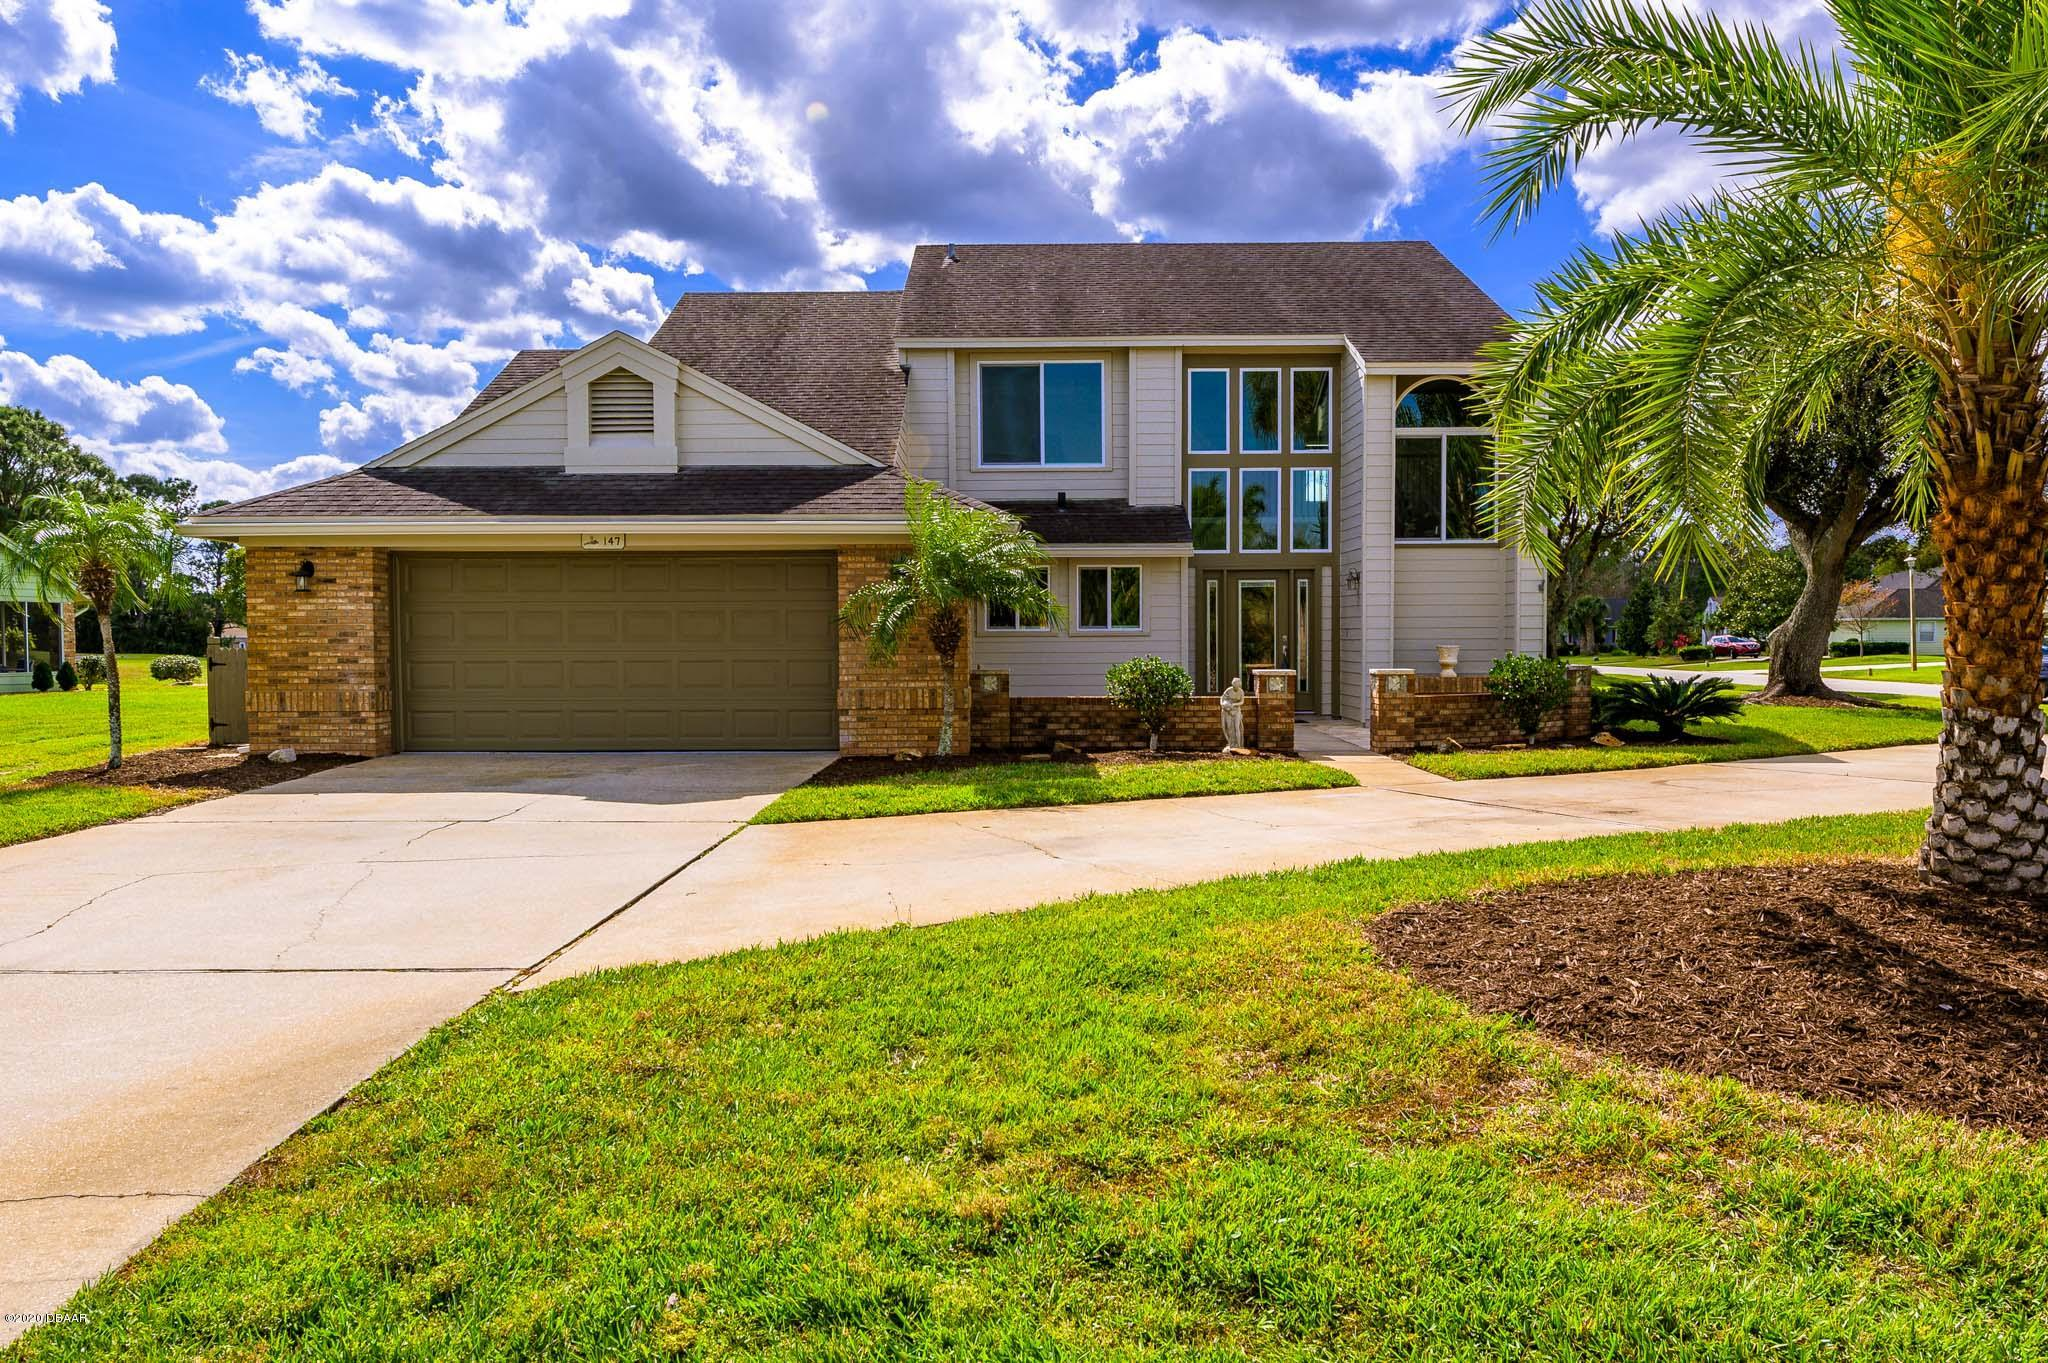 Photo of 147 Green Heron Court, Daytona Beach, FL 32119